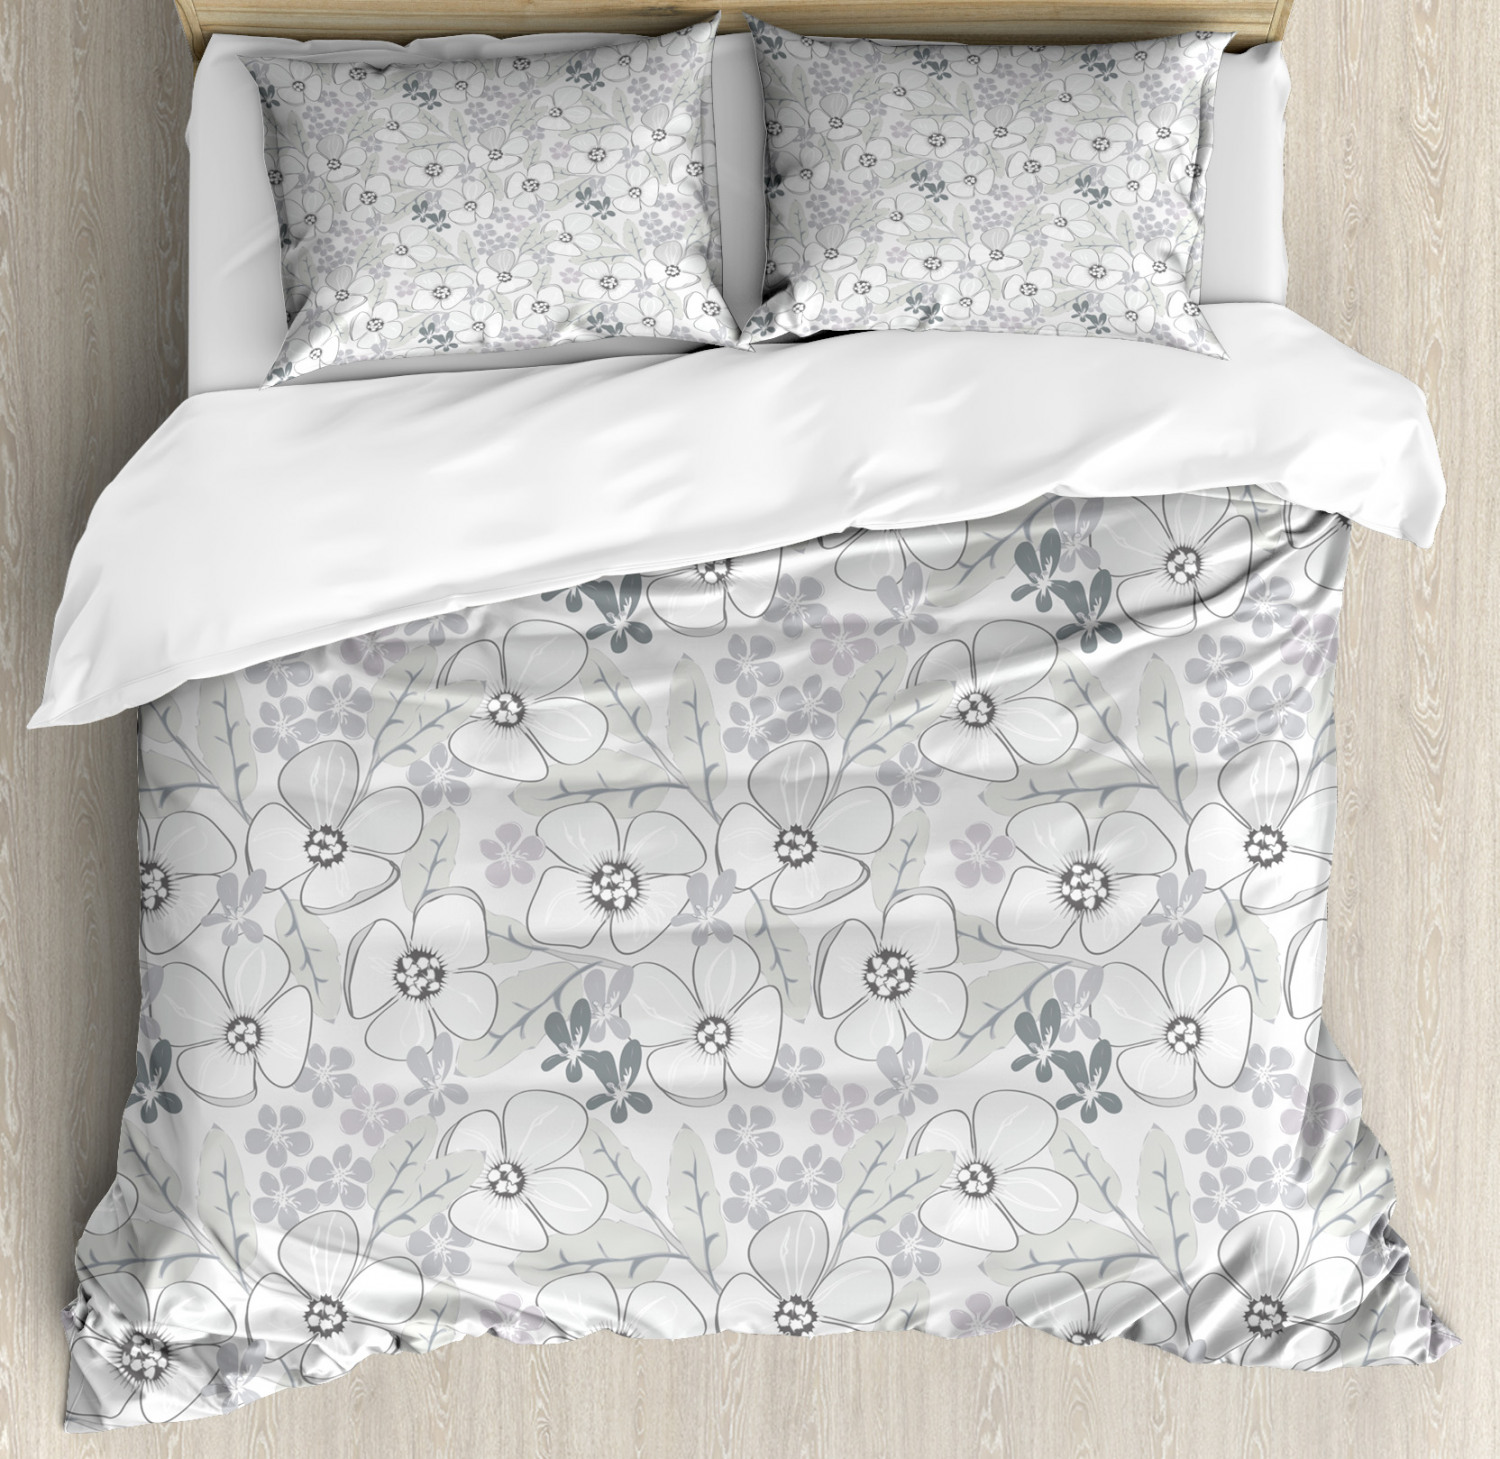 Grey Duvet Cover Set with Pillow Shams Abstract Sketchy Flowers Print